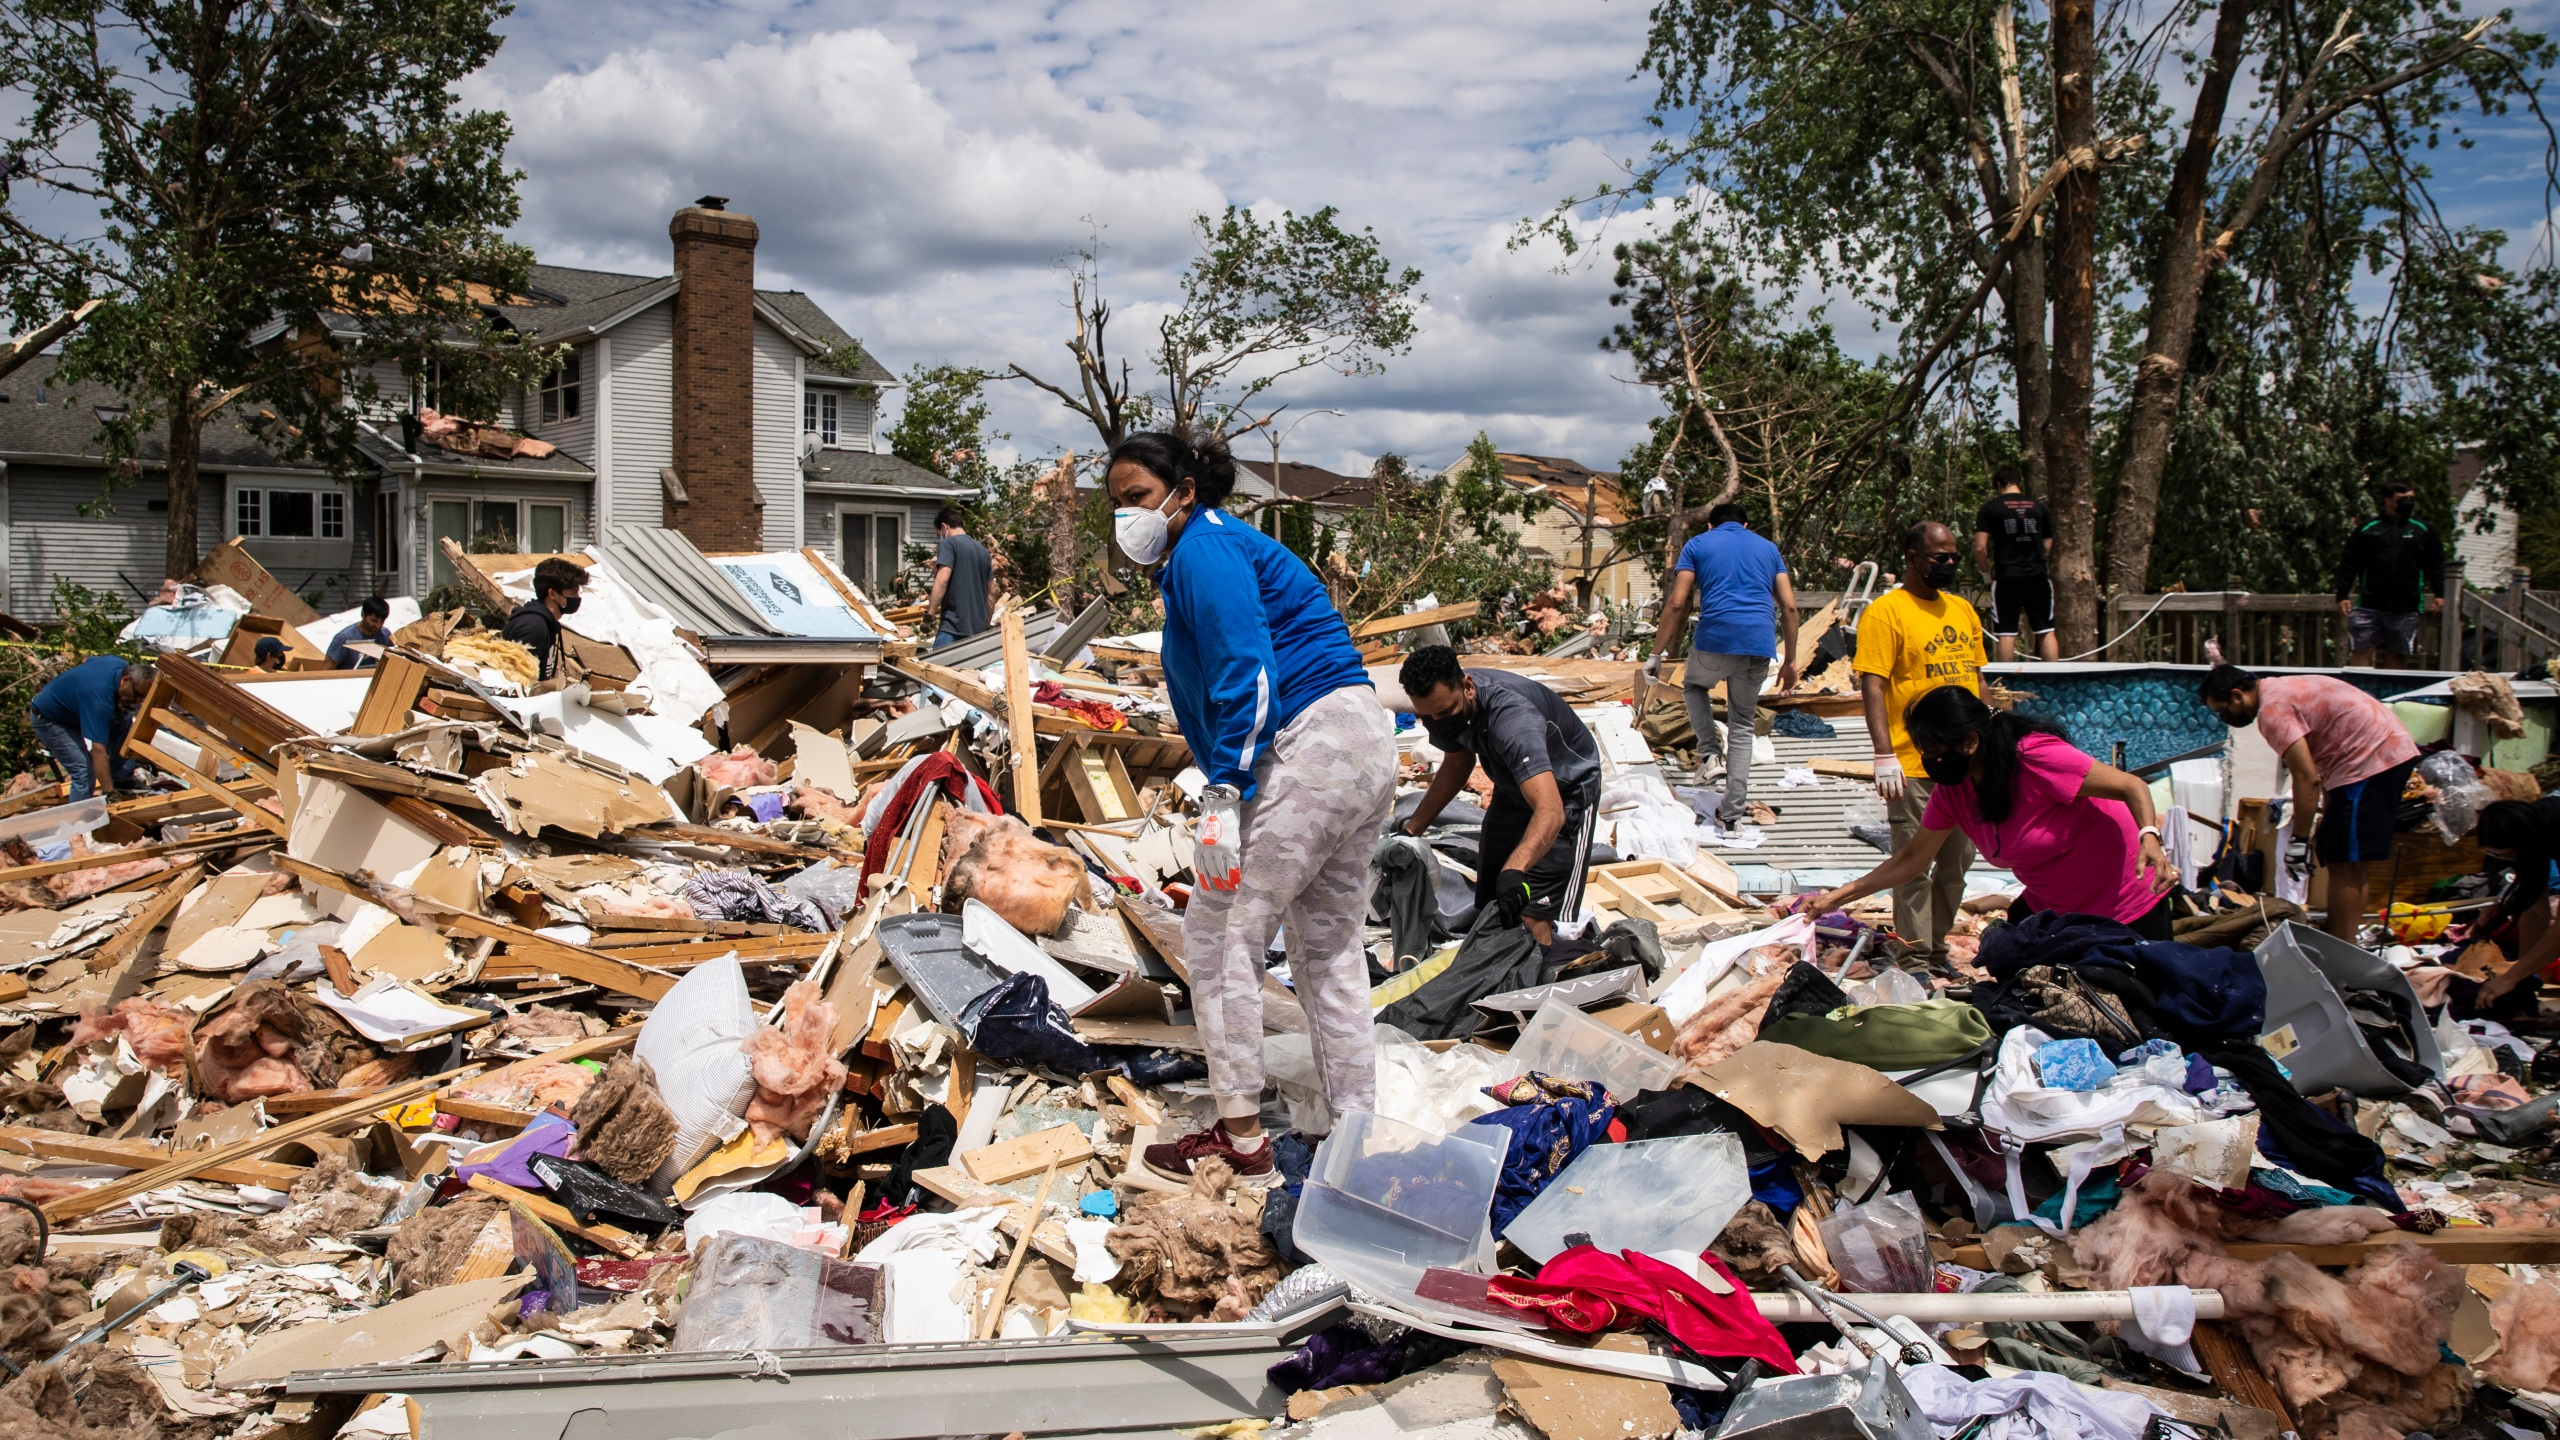 Dozens of volunteers help clean up a demolished home on Princeton Circle near Ranchview Drive in Naperville after a tornado ripped through the western suburbs overnight, Monday afternoon, June 21, 2021. (Ashlee Rezin Garcia/Sun-Times/Chicago Sun-Times via AP)